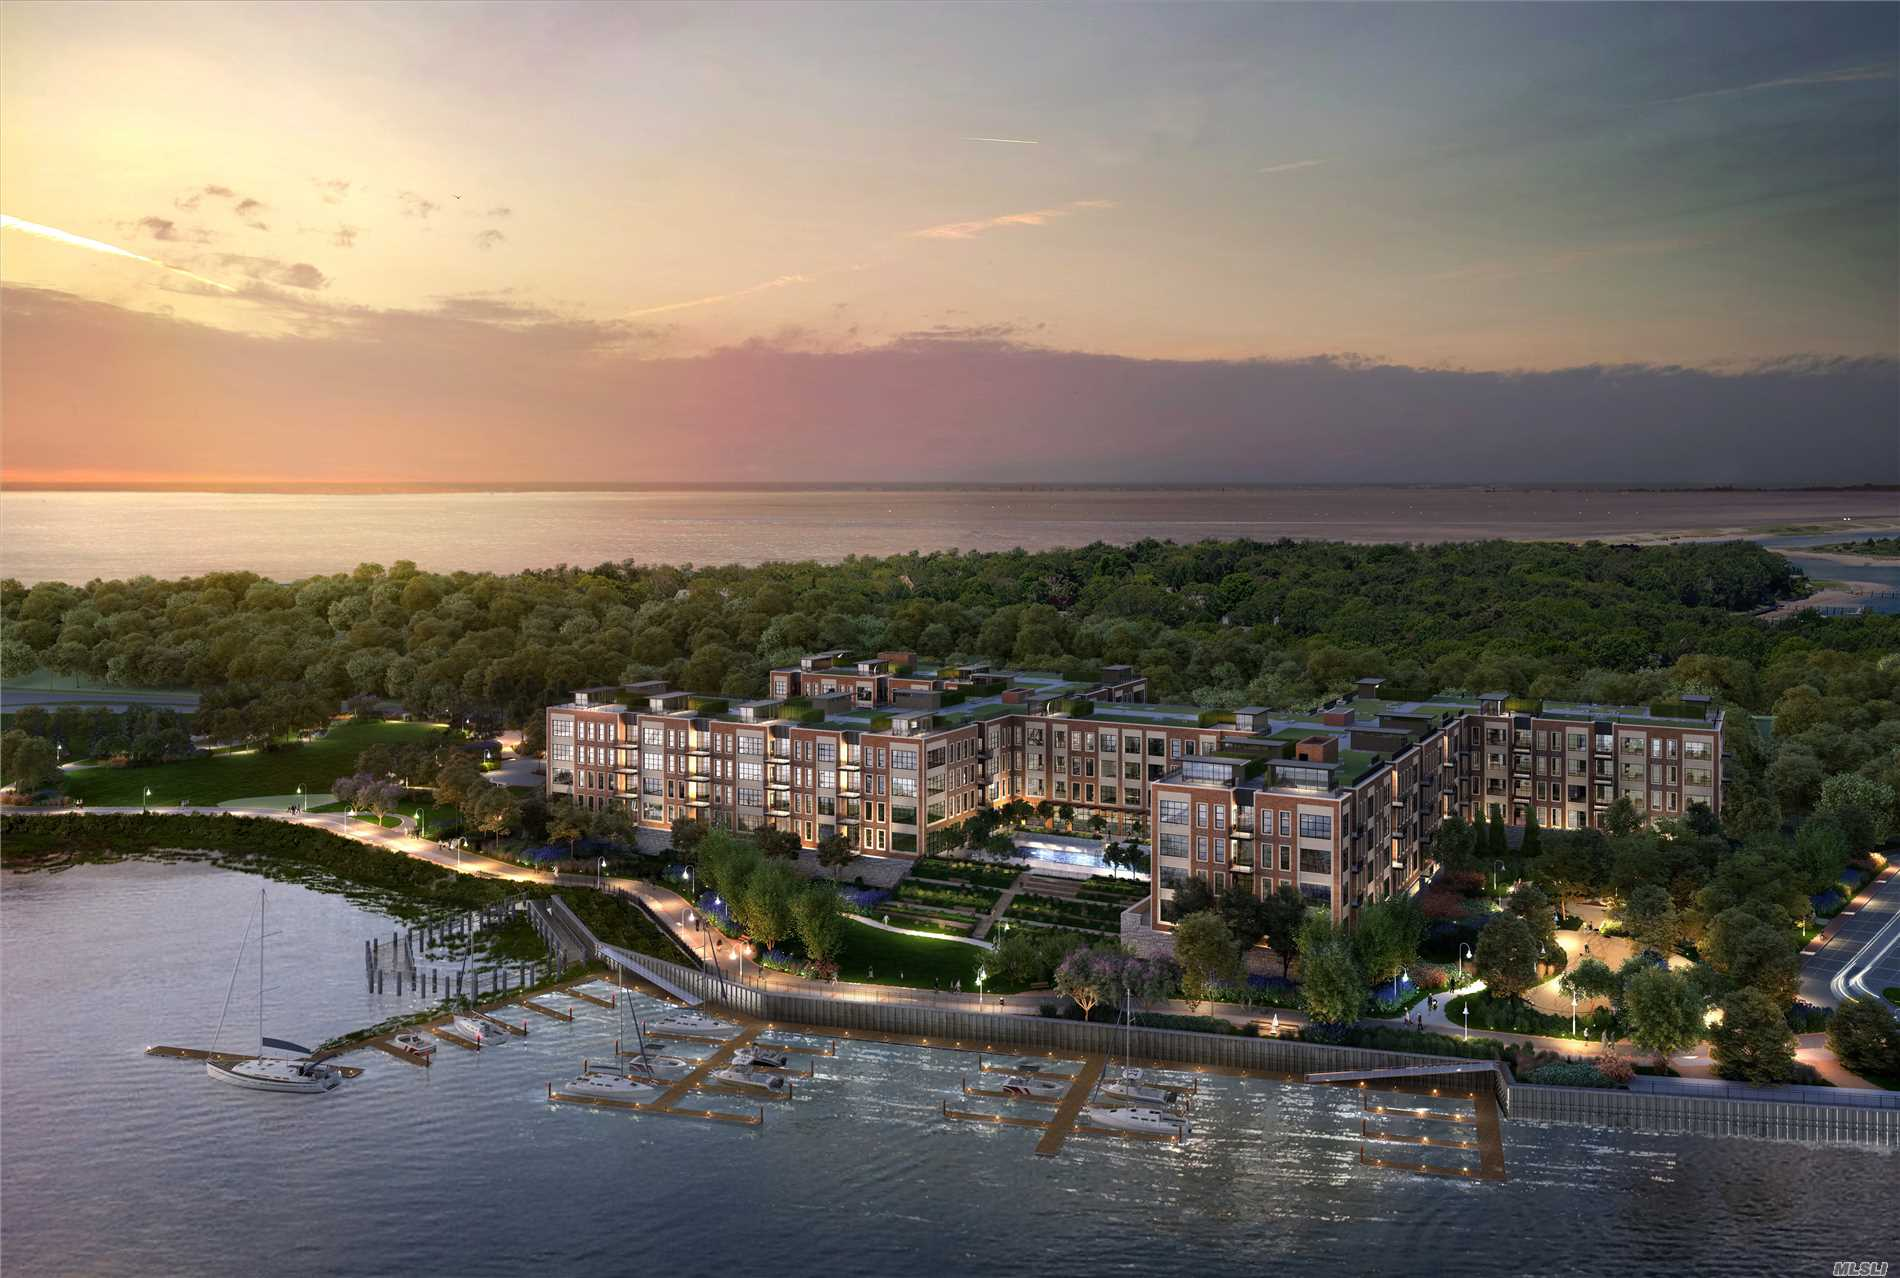 Property for sale at 100 Garvies Point Road # 1031, Glen Cove NY 11542, Glen Cove,  New York 11542